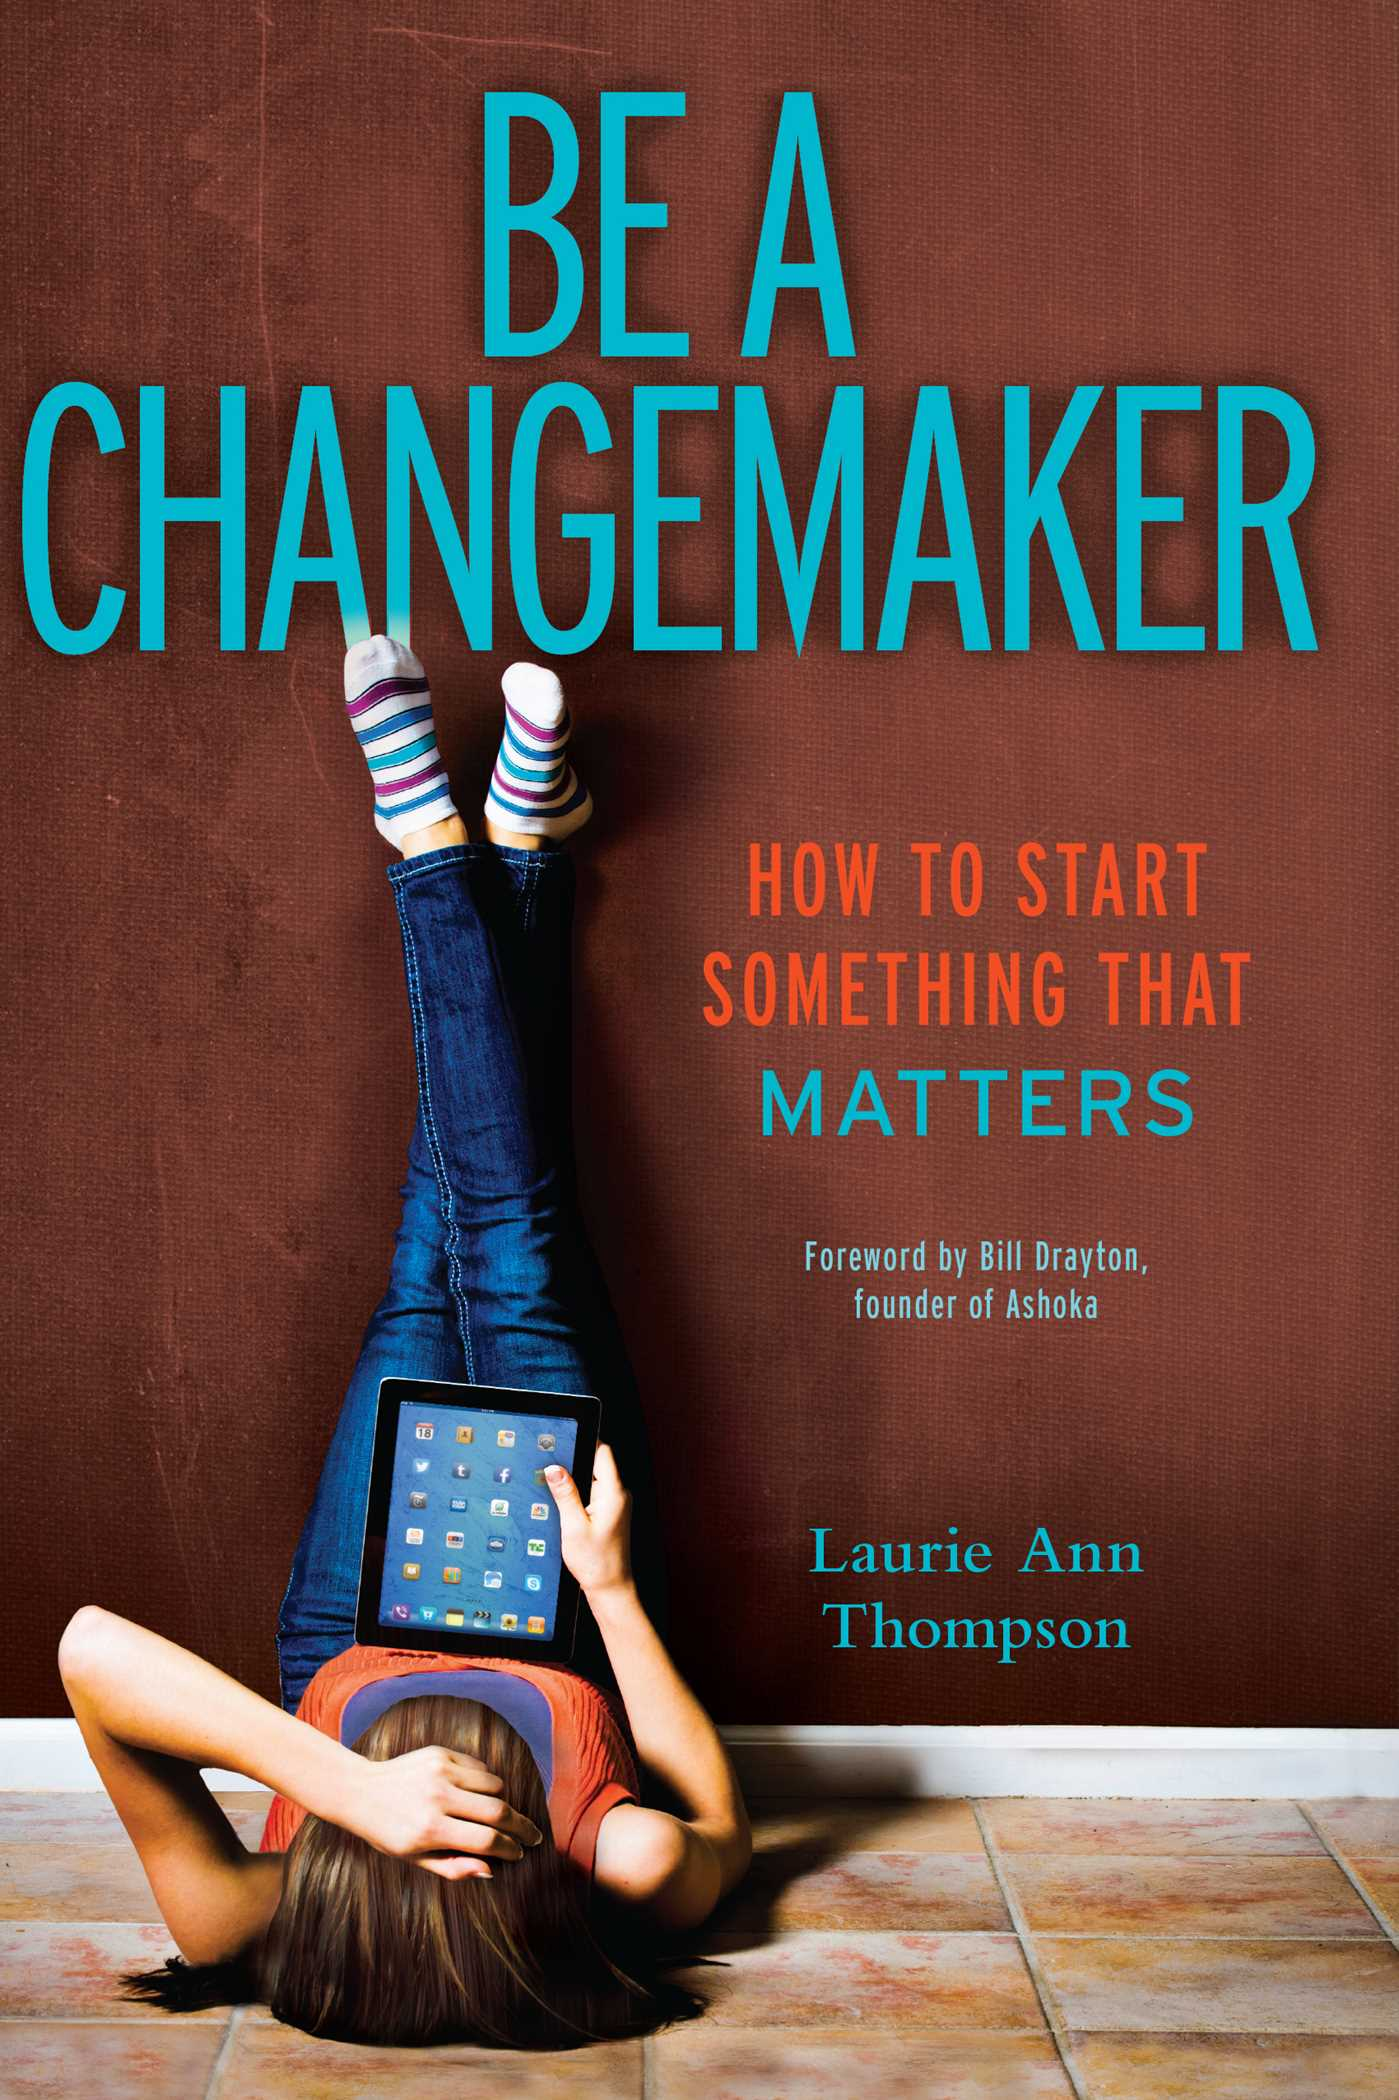 Be a changemaker 9781582704647 hr